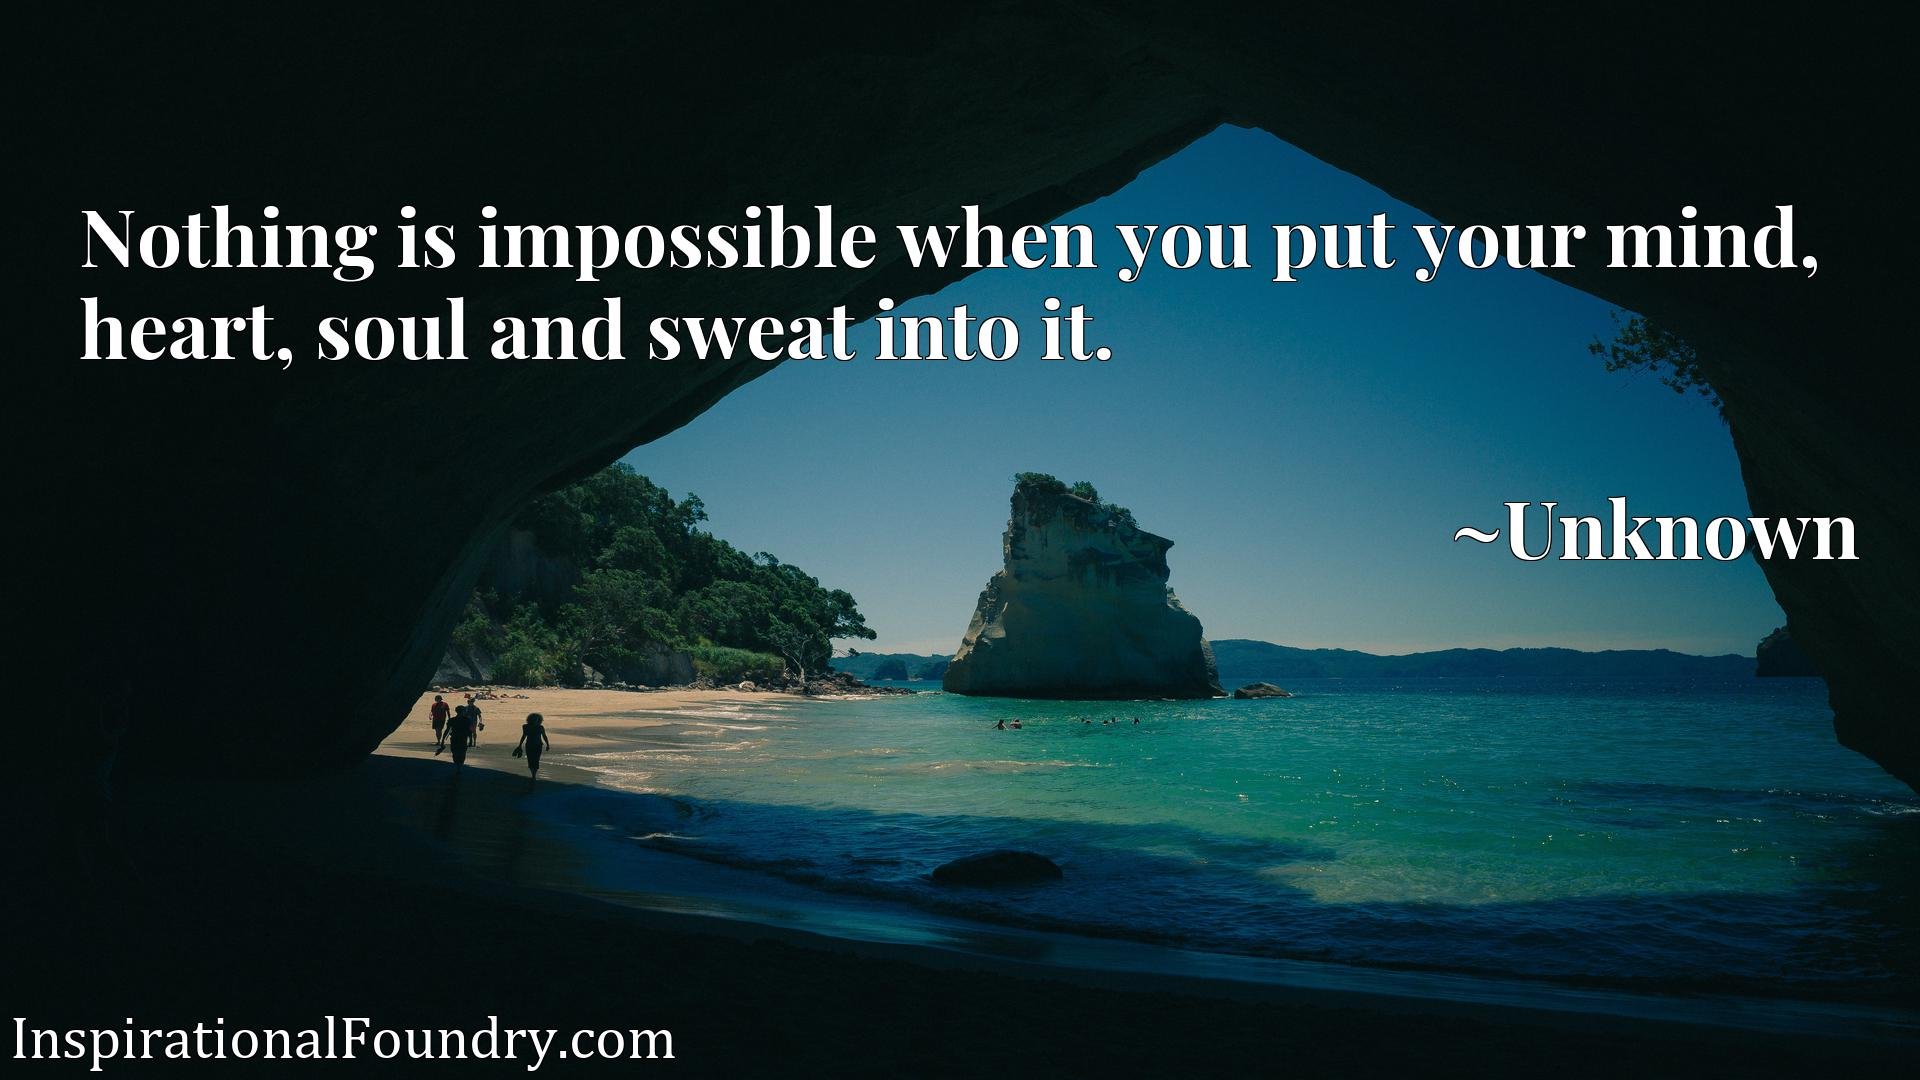 Nothing is impossible when you put your mind, heart, soul and sweat into it.